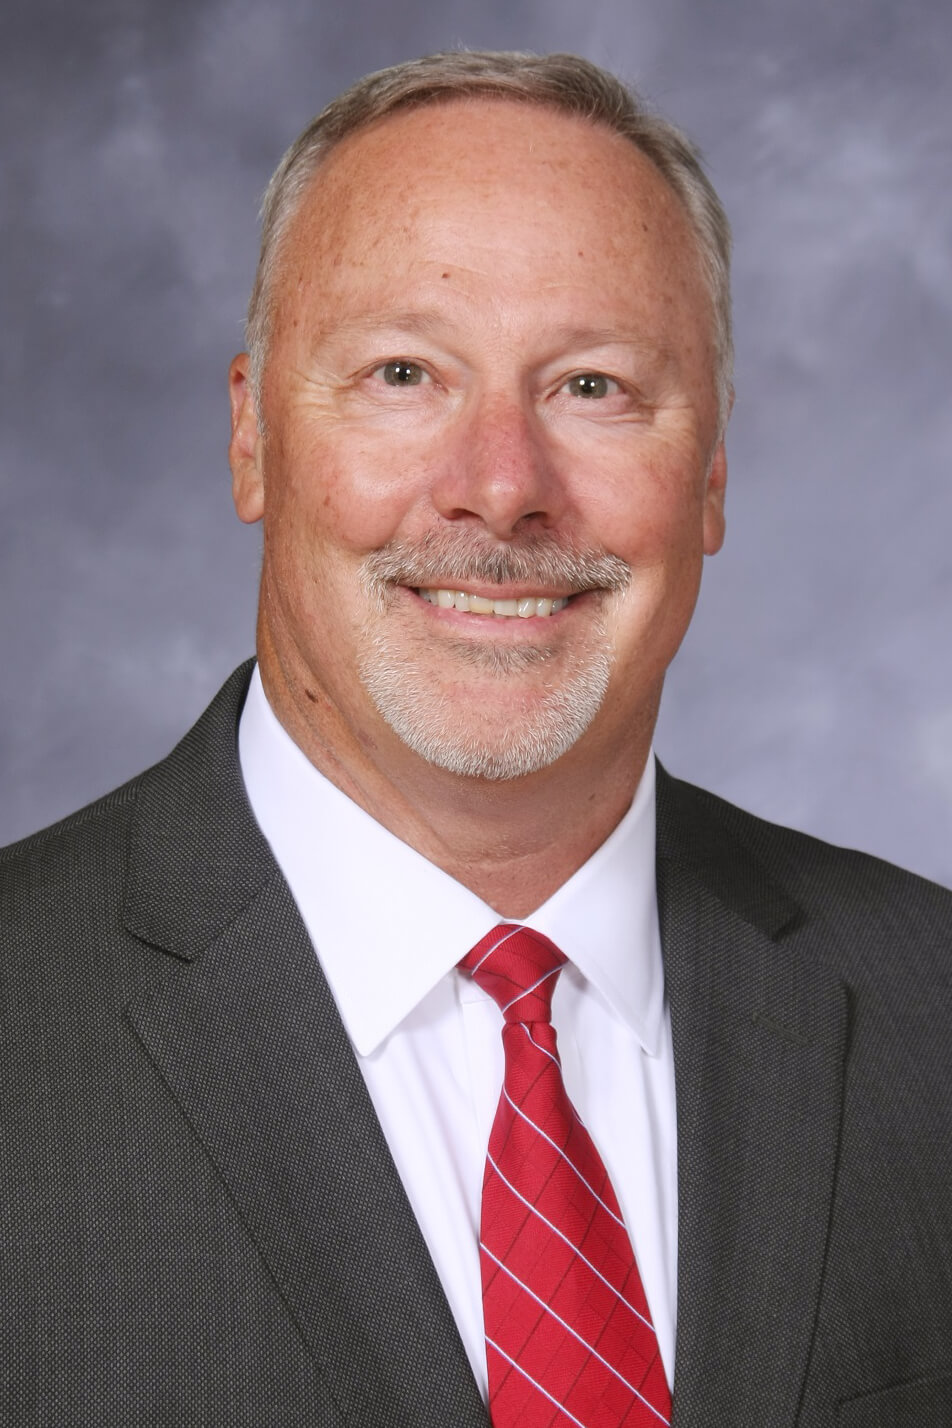 Barry L. Anderson